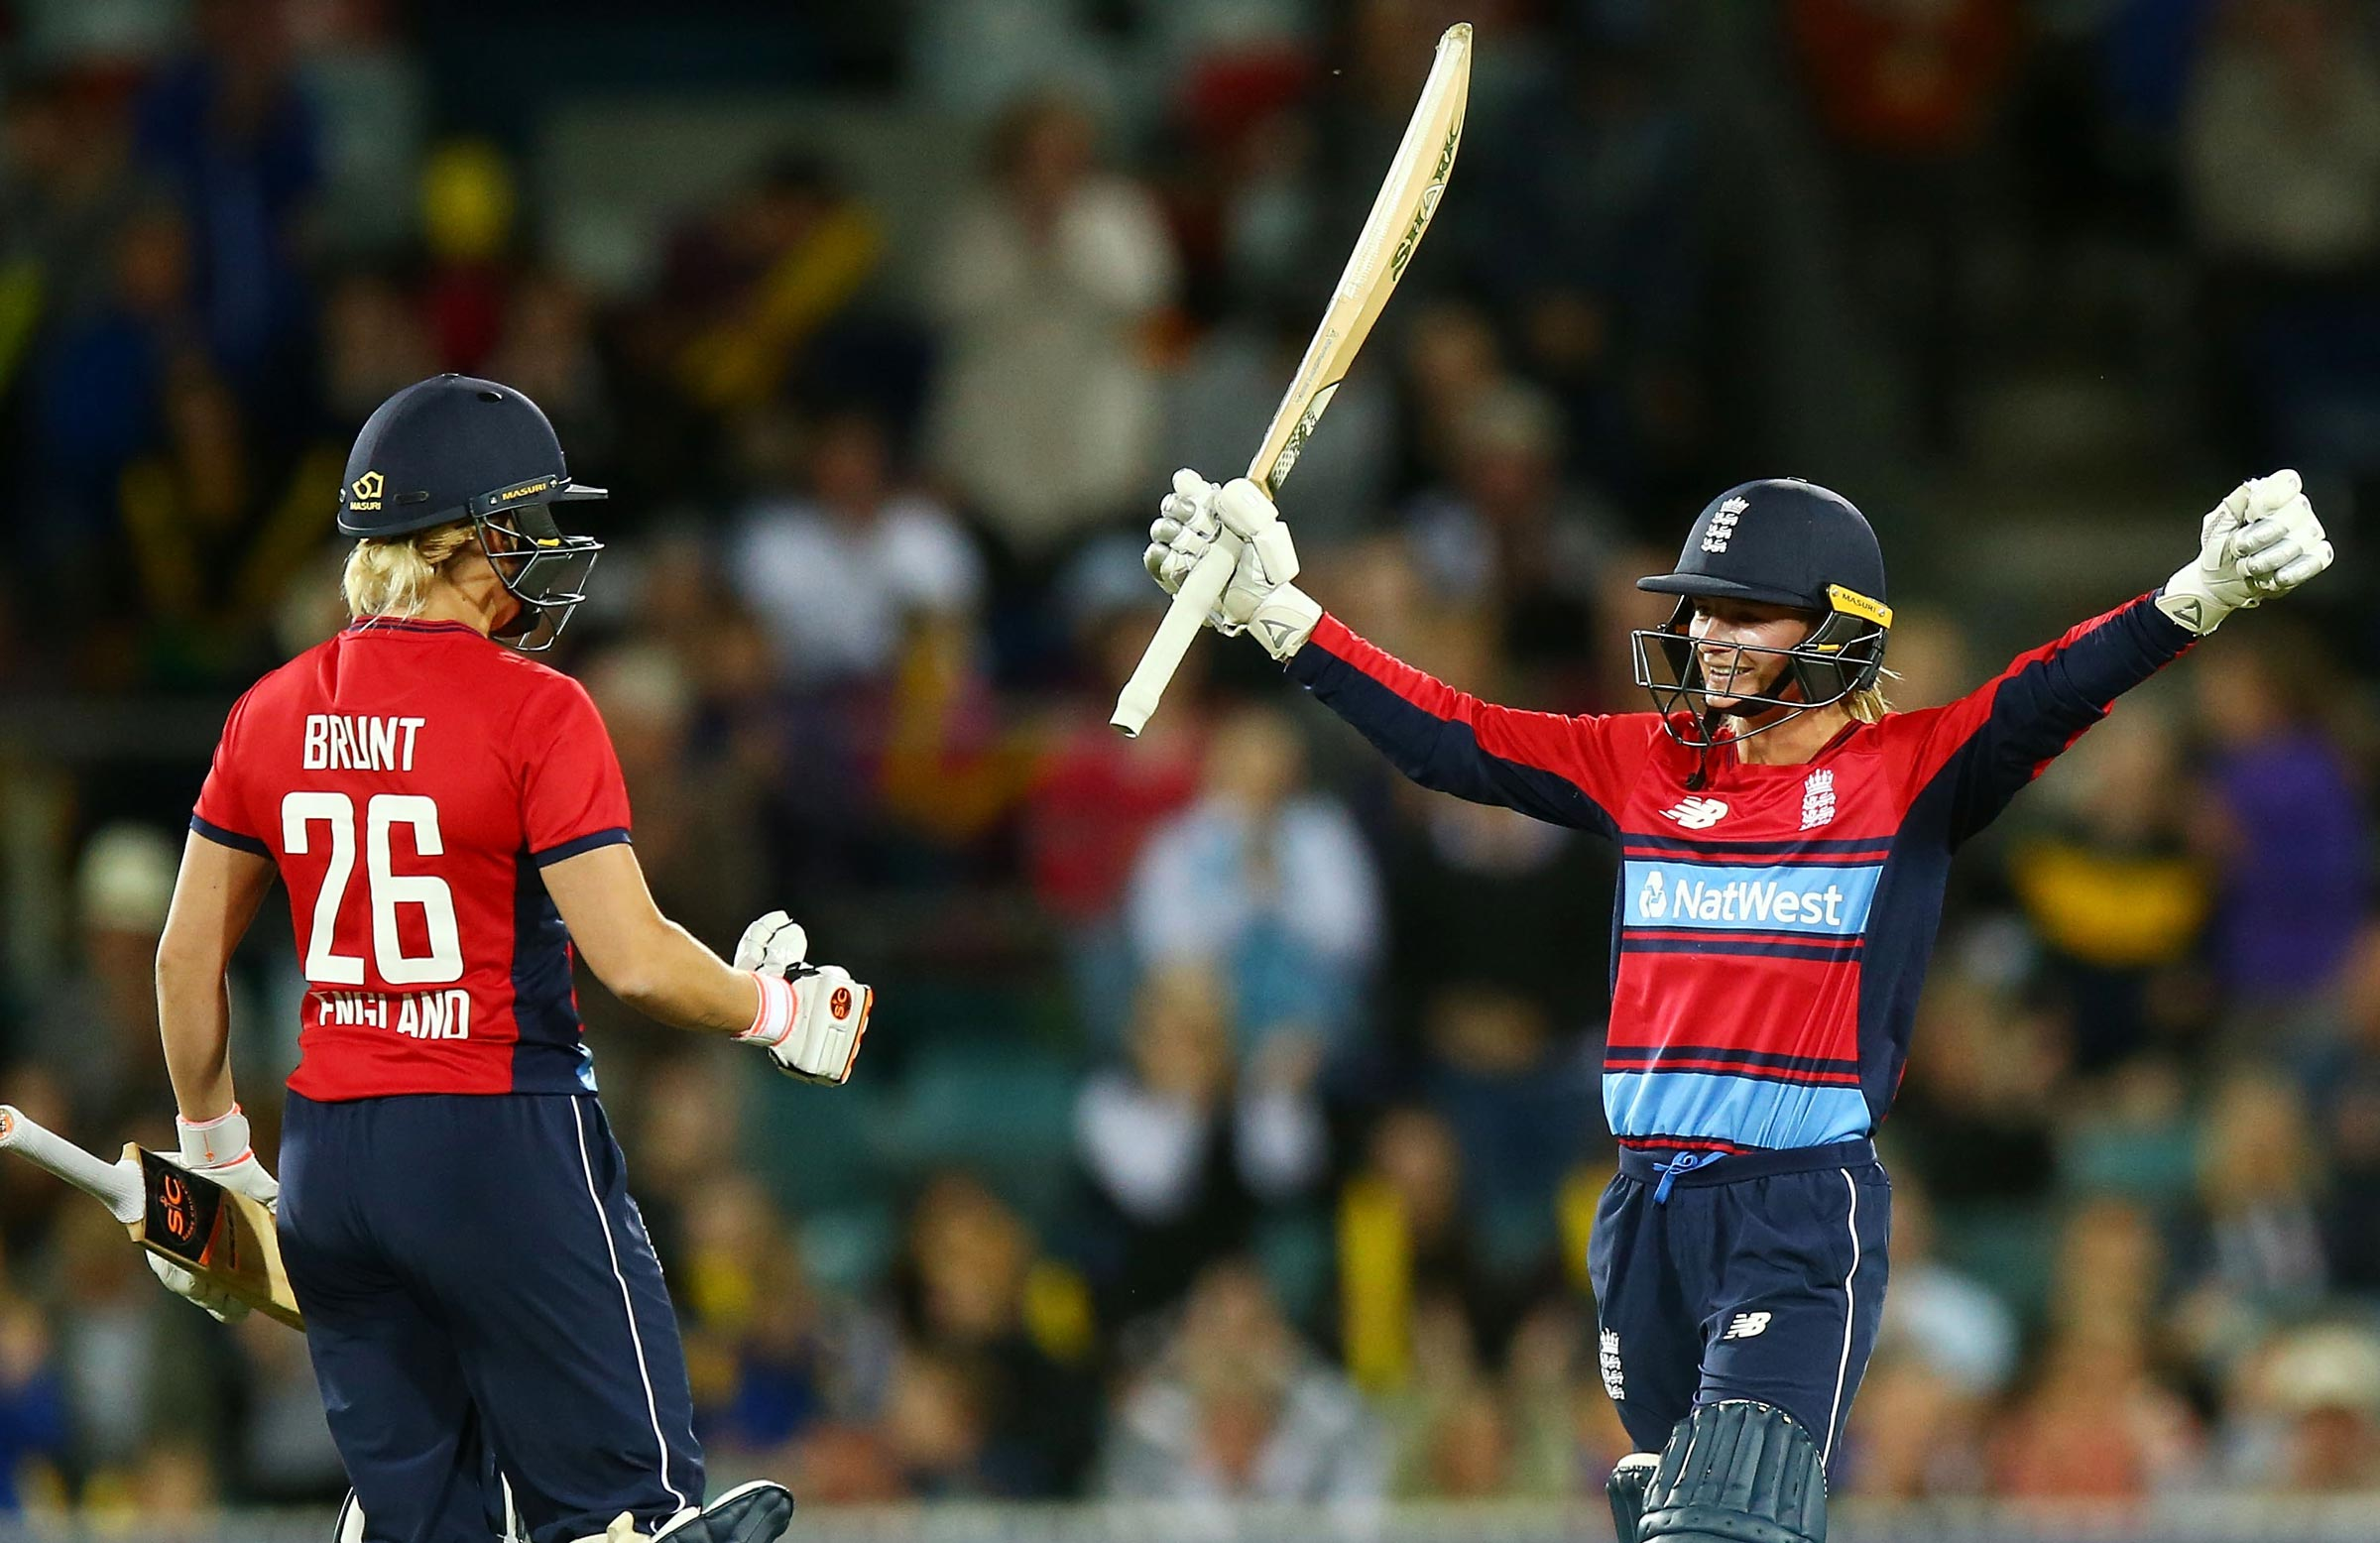 England fought back to level the Ashes 8-8 // Getty